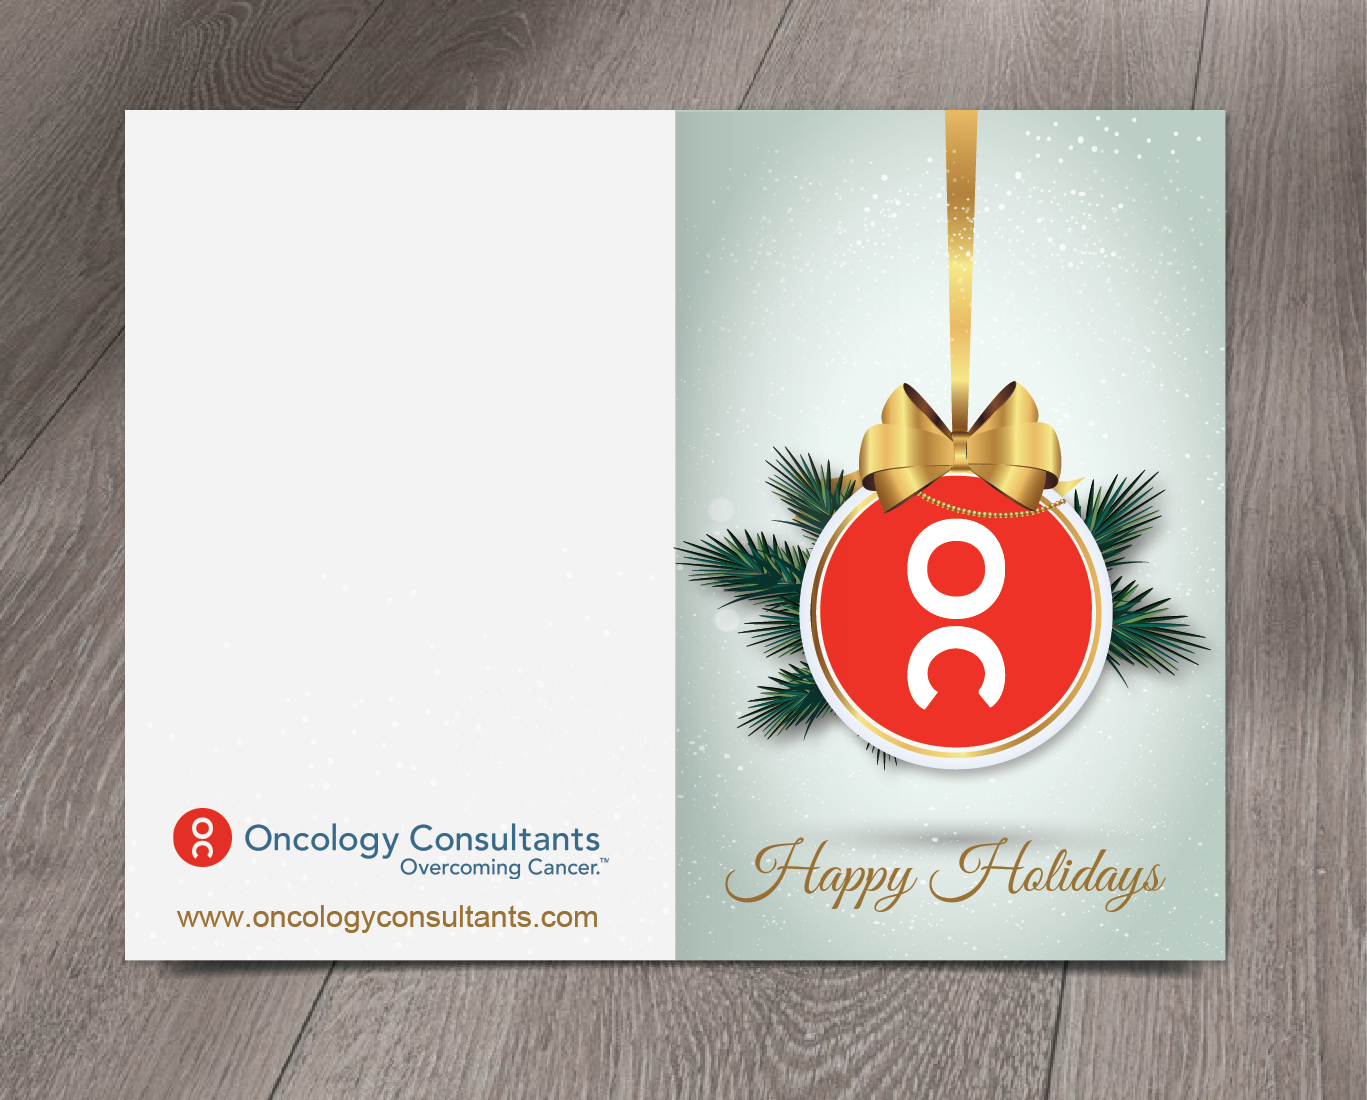 Greeting Card Design For Oncology Consultants By Alex989 Design